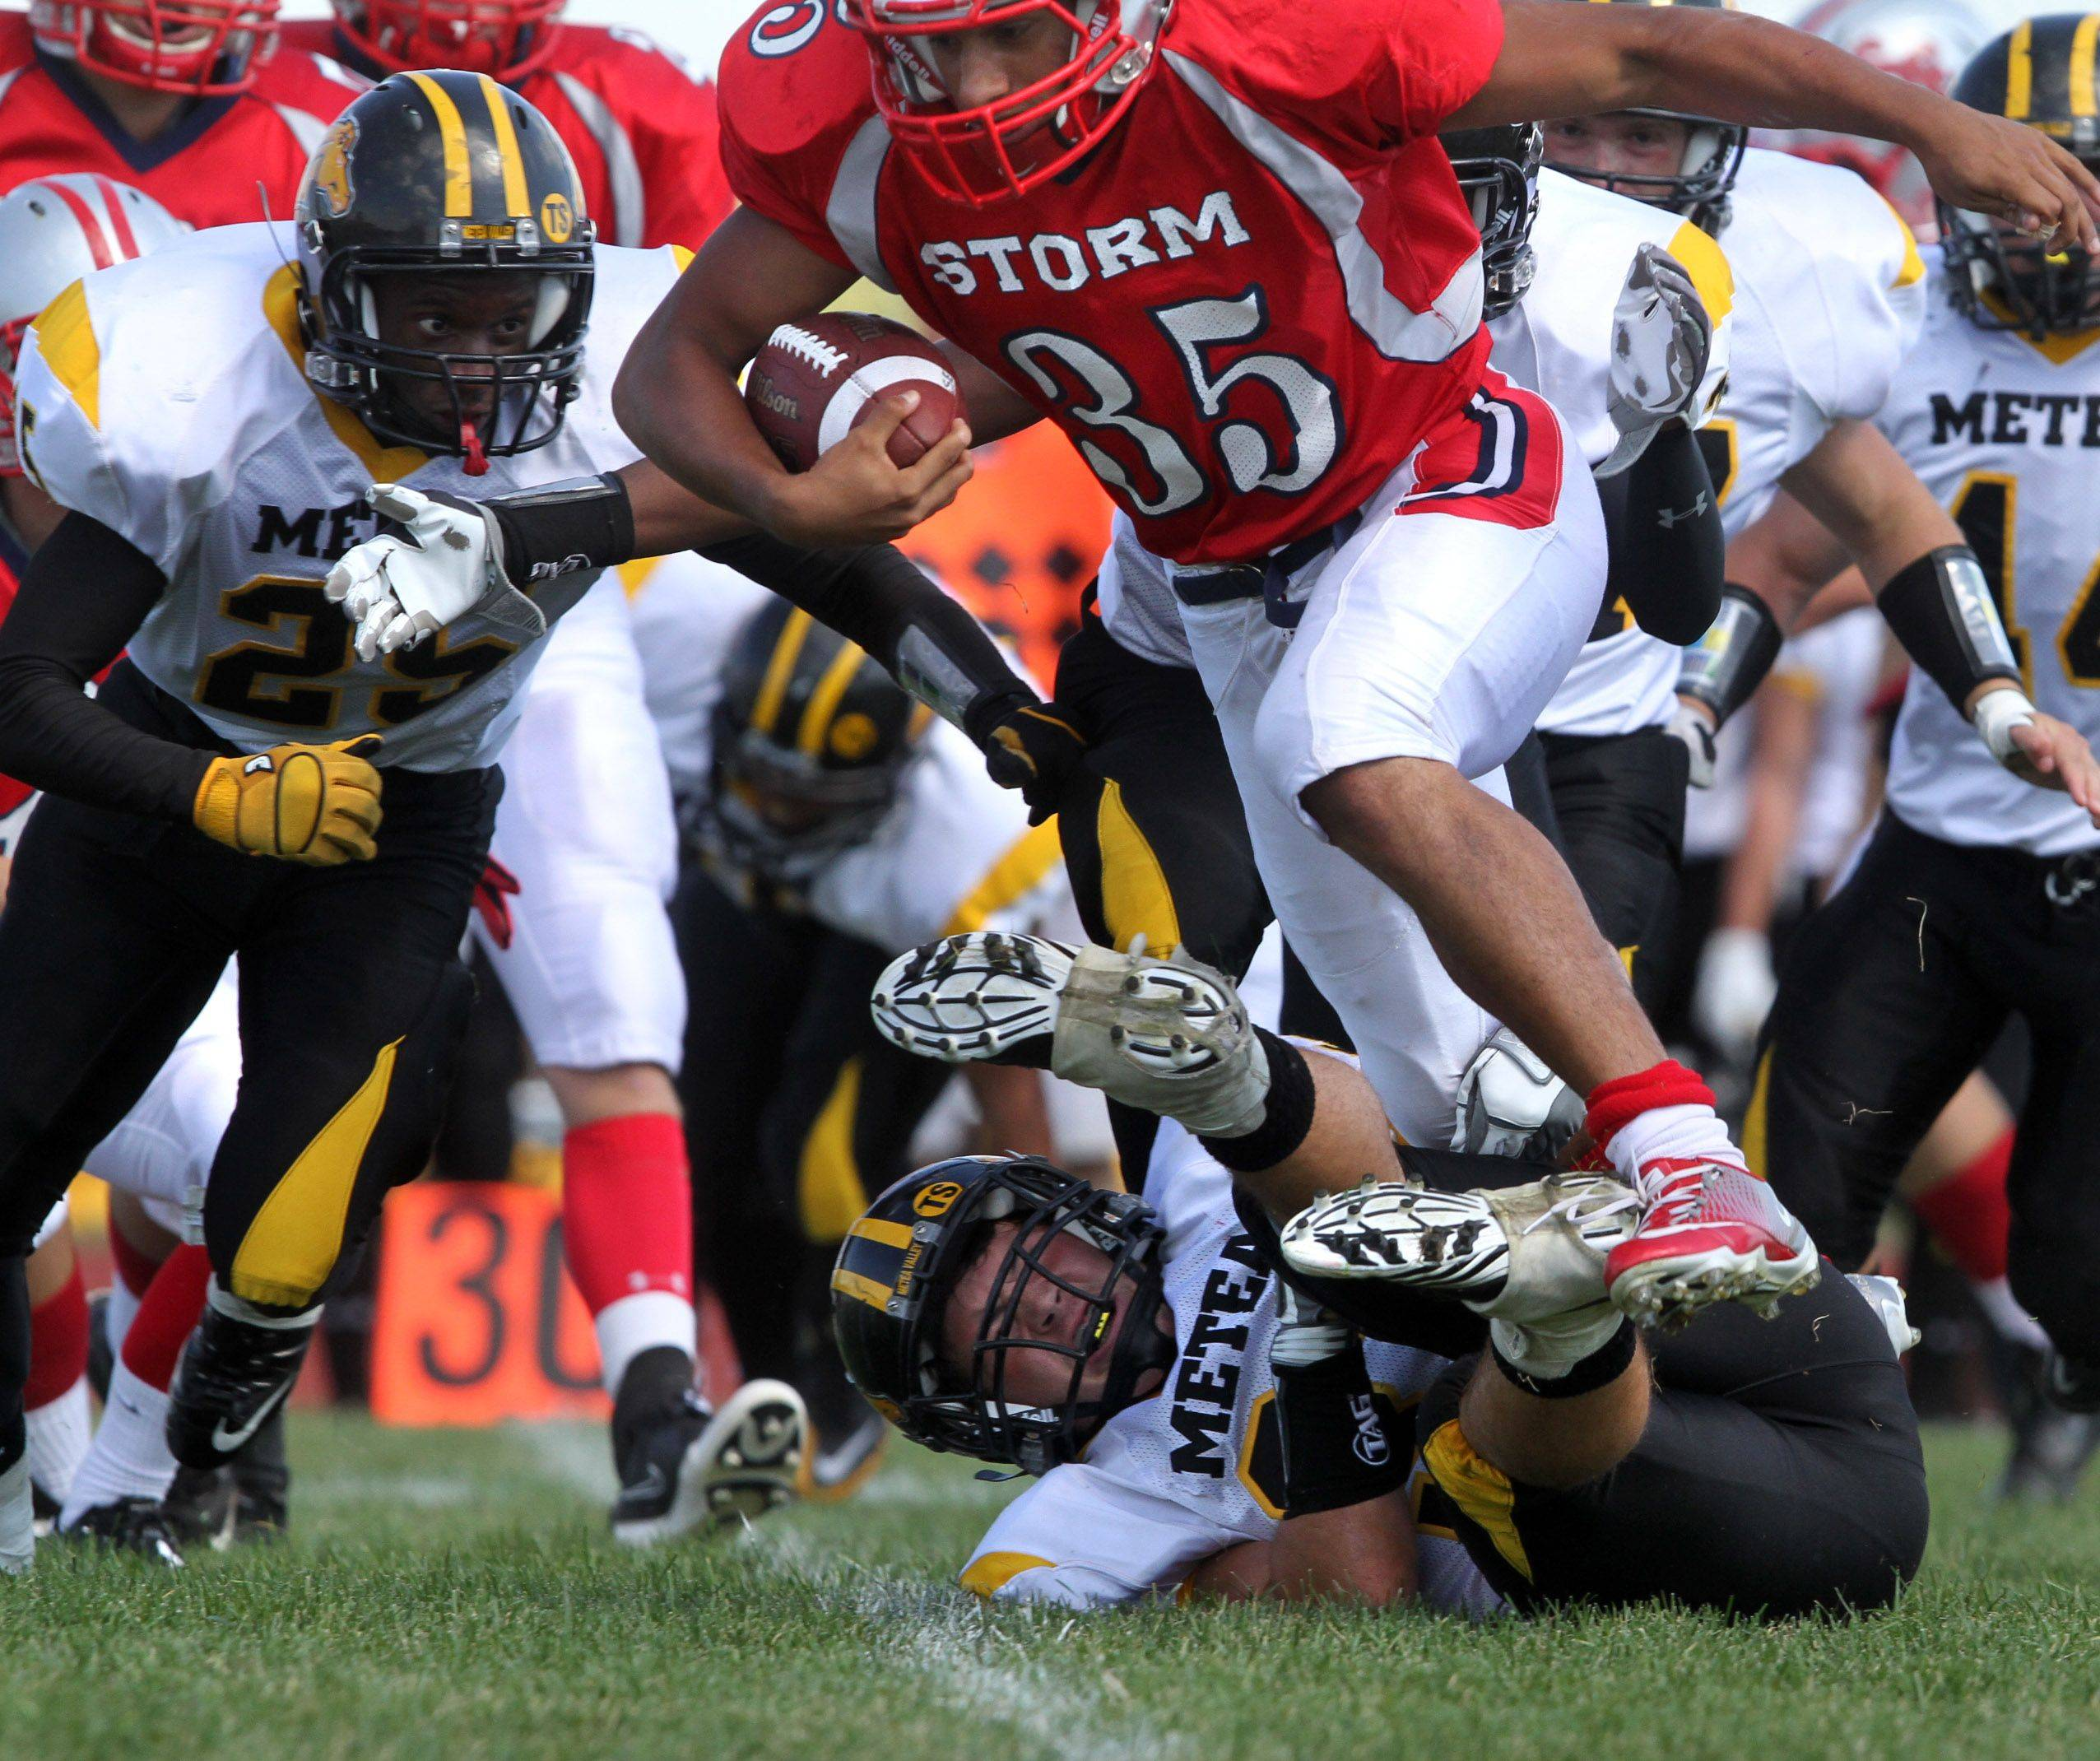 South Elgin's Adolfo Pacheco runs over a Metea Valley defender scoring a touchdown at South Elgin on Saturday, September 17th.